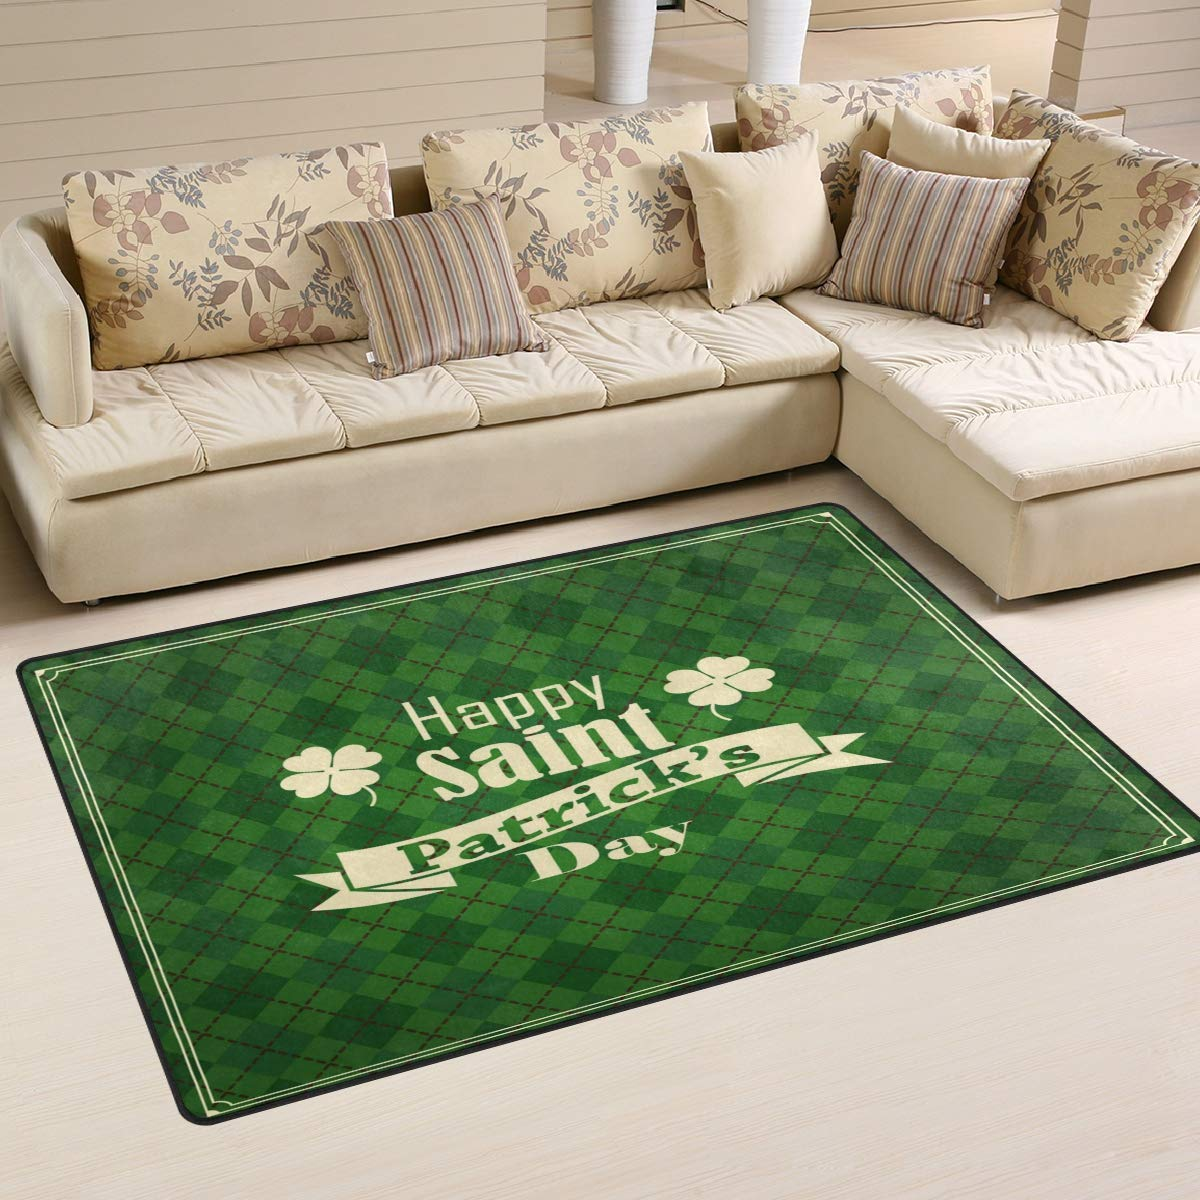 ALAZA Home Decor Happy Saint Patrick's Day On Green Geometric Background Area Rug Carpet, Rugs Floor Carpet Mat Living Room Carpet for Girl's Room Home Indoor Decor 3'x5'